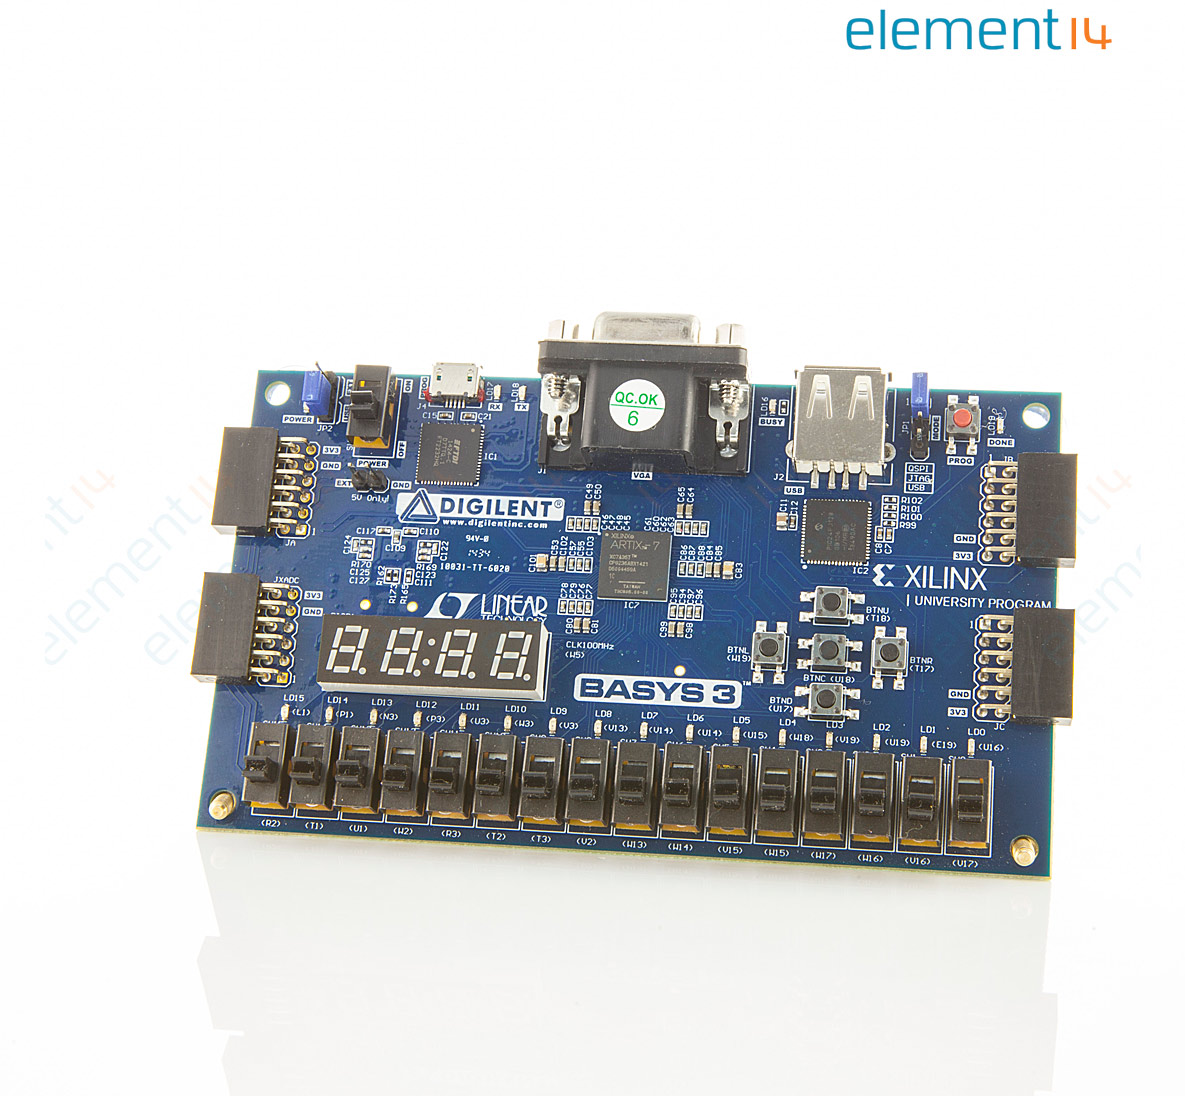 410 183 Digilent Development Board Basys 3 Artix 7 Fpga Segment Circuit Diagram Of 7segment Display Interfacing To Arm Cortex M0 Add Compare